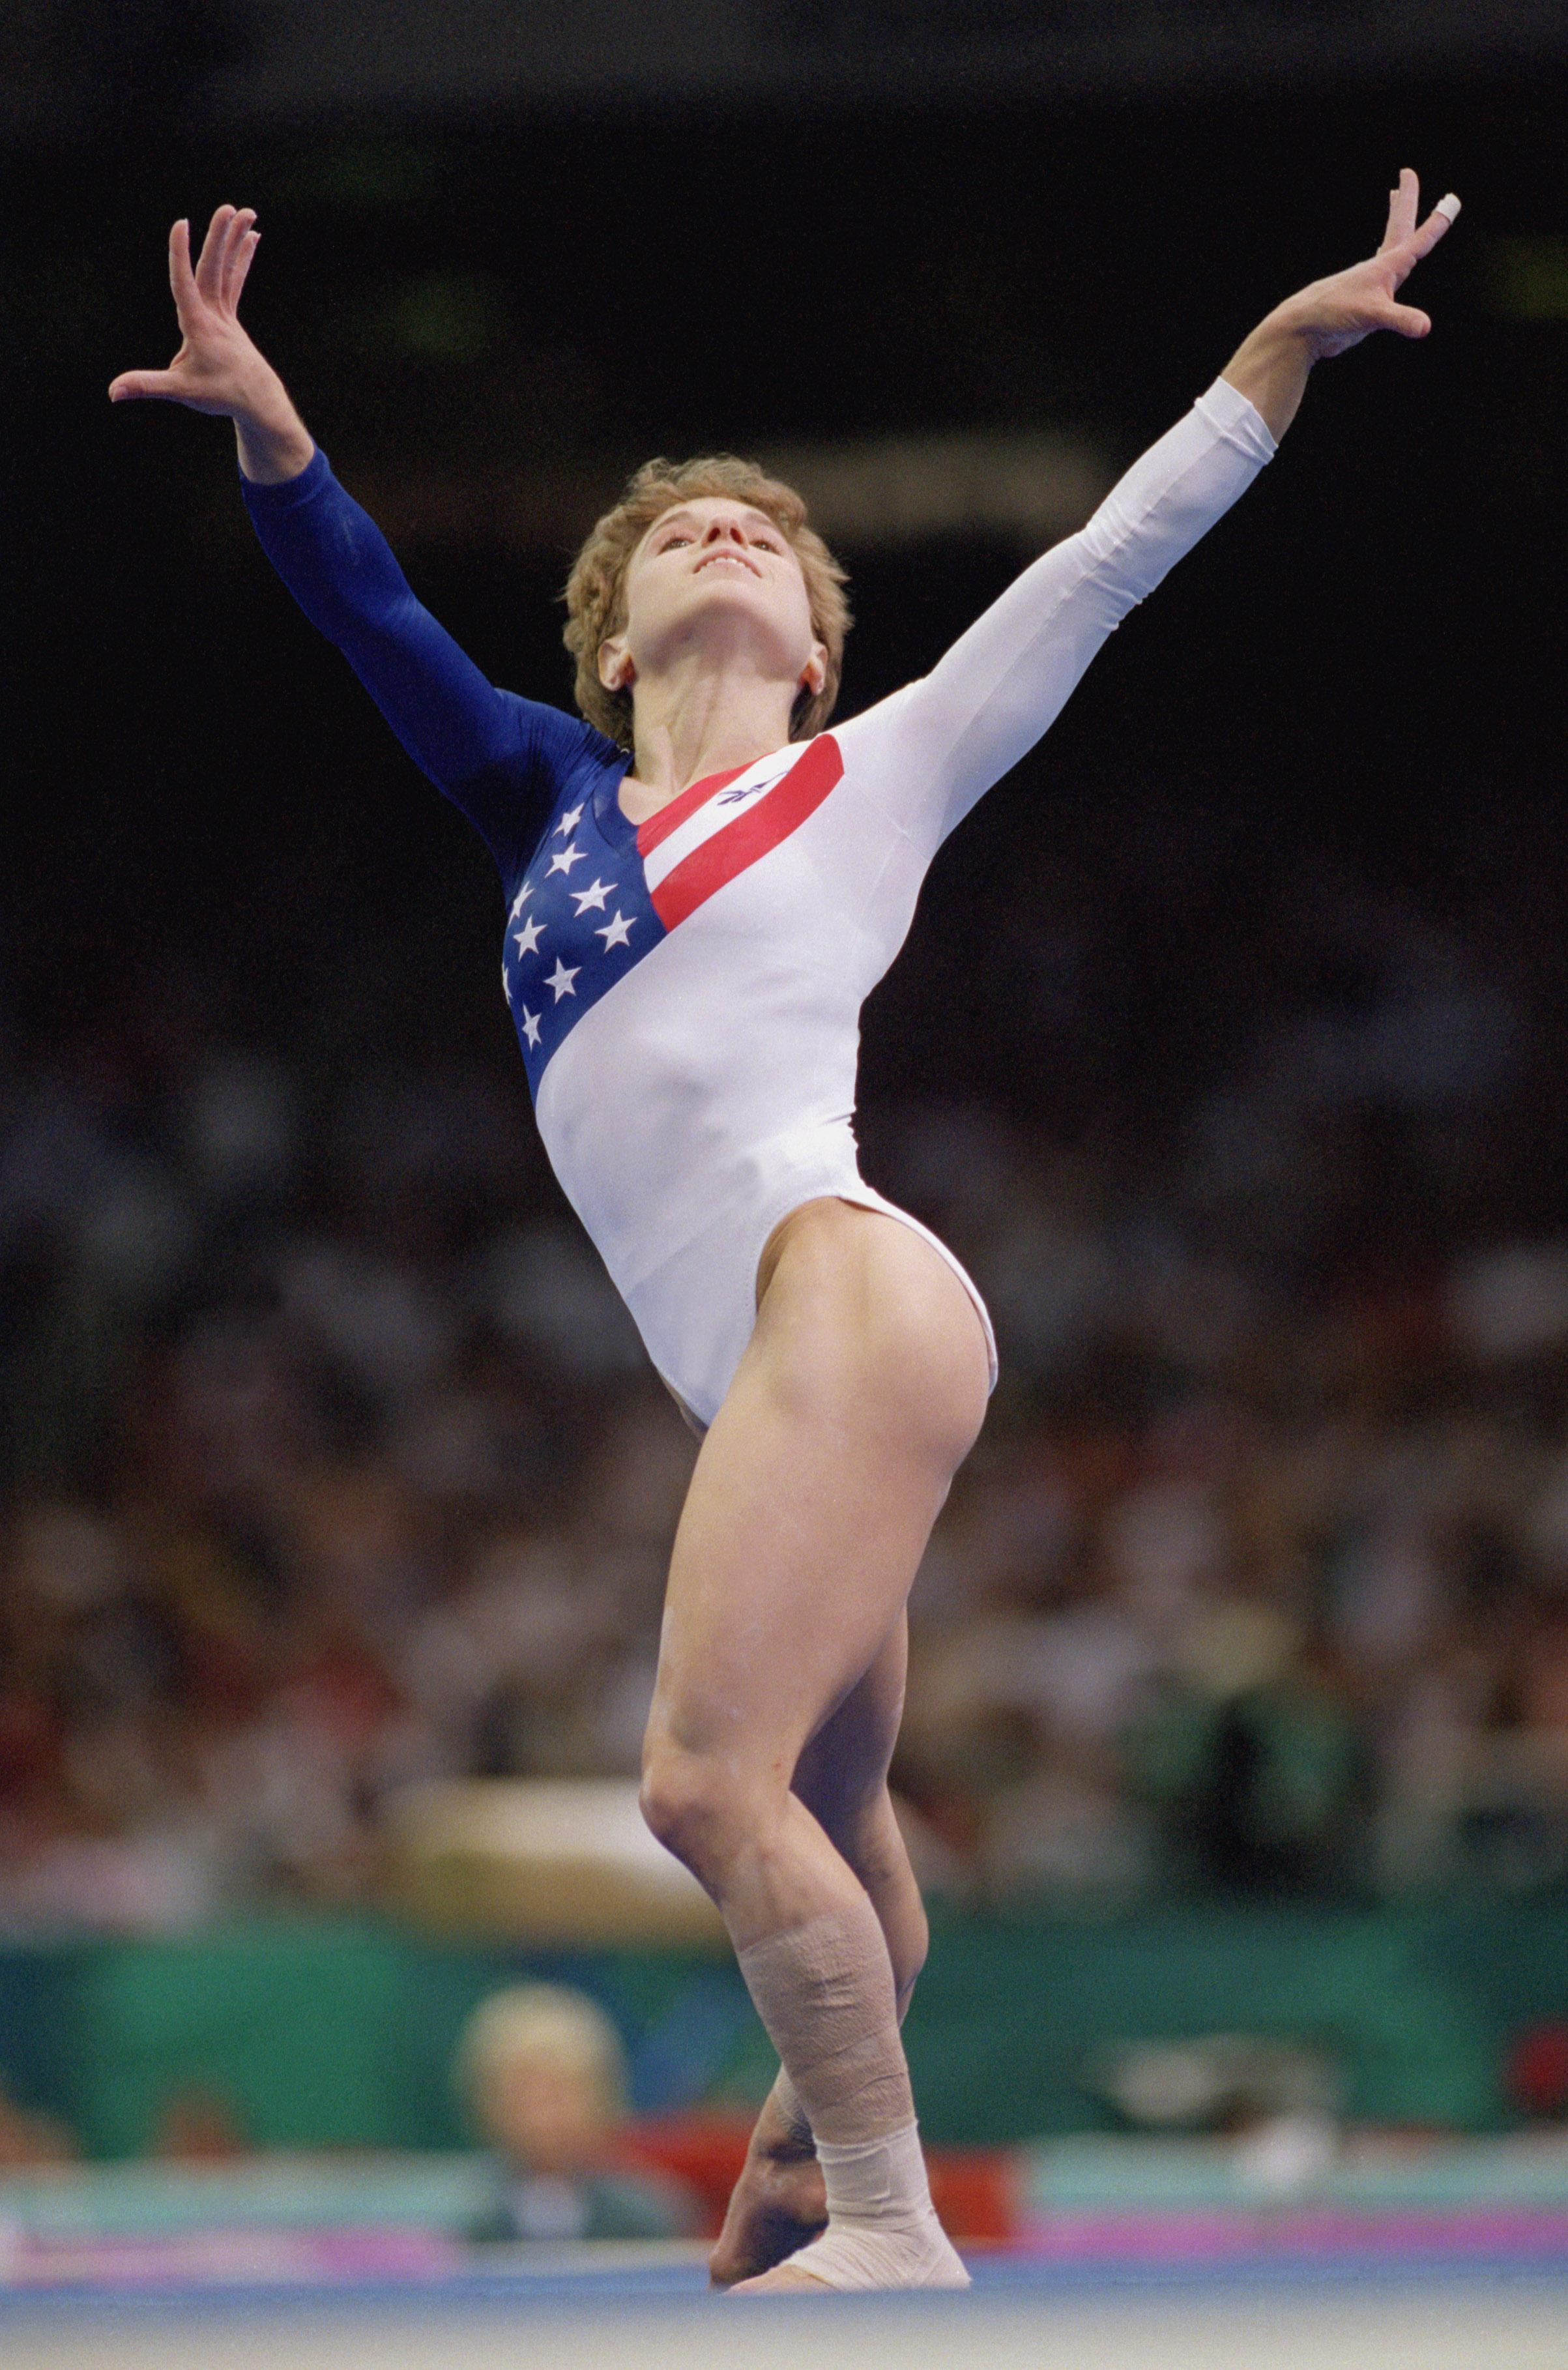 Kerri Strug poses during routine